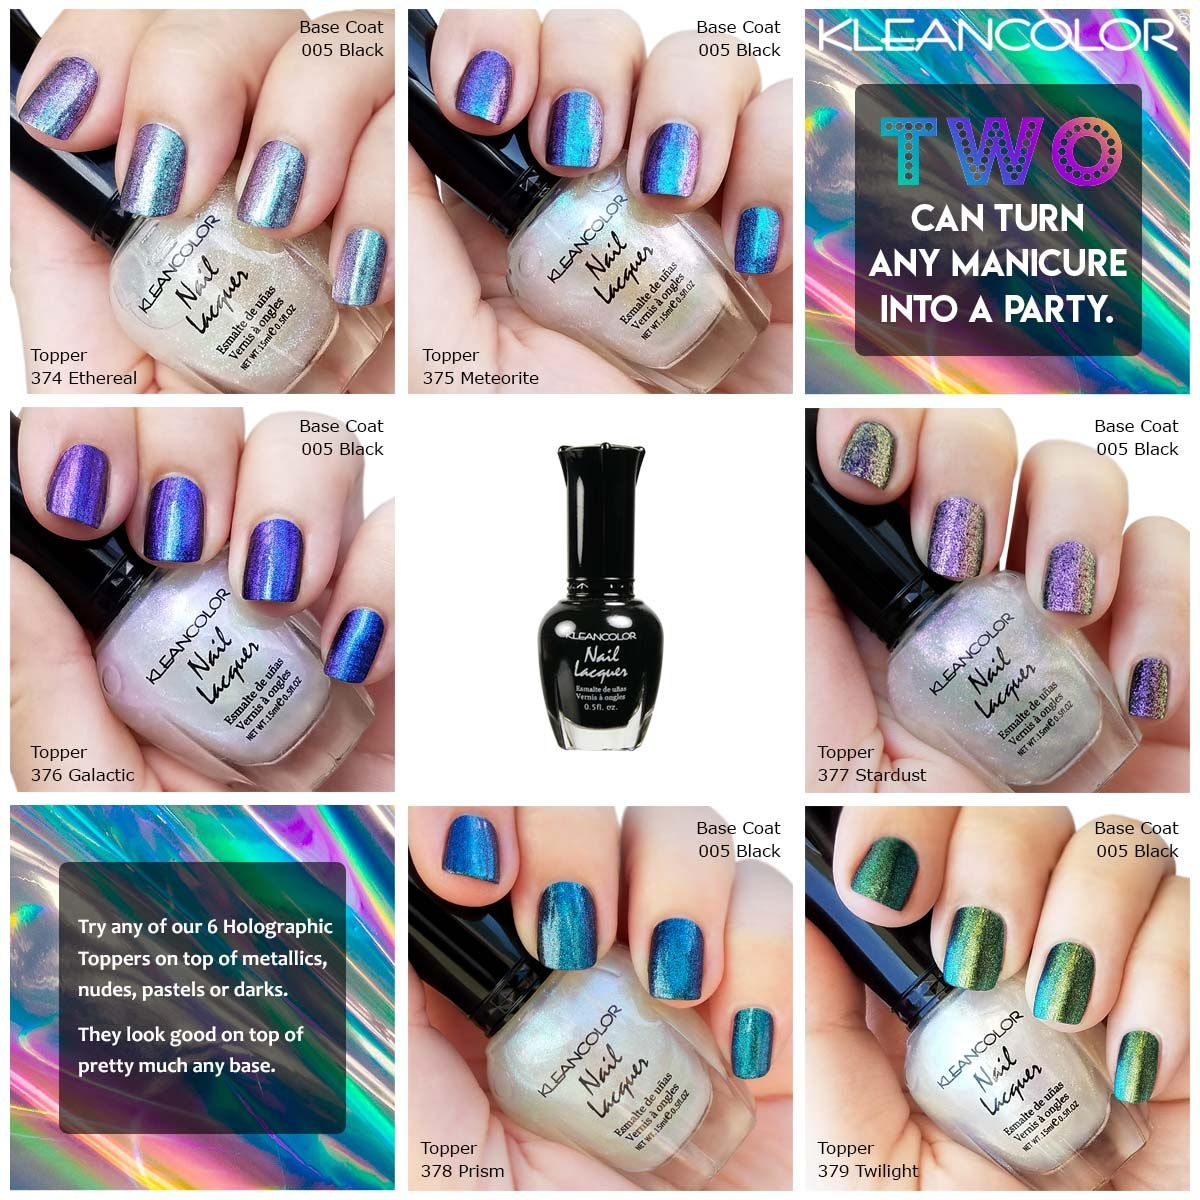 Check out the effects achieved with these swatches of new ...